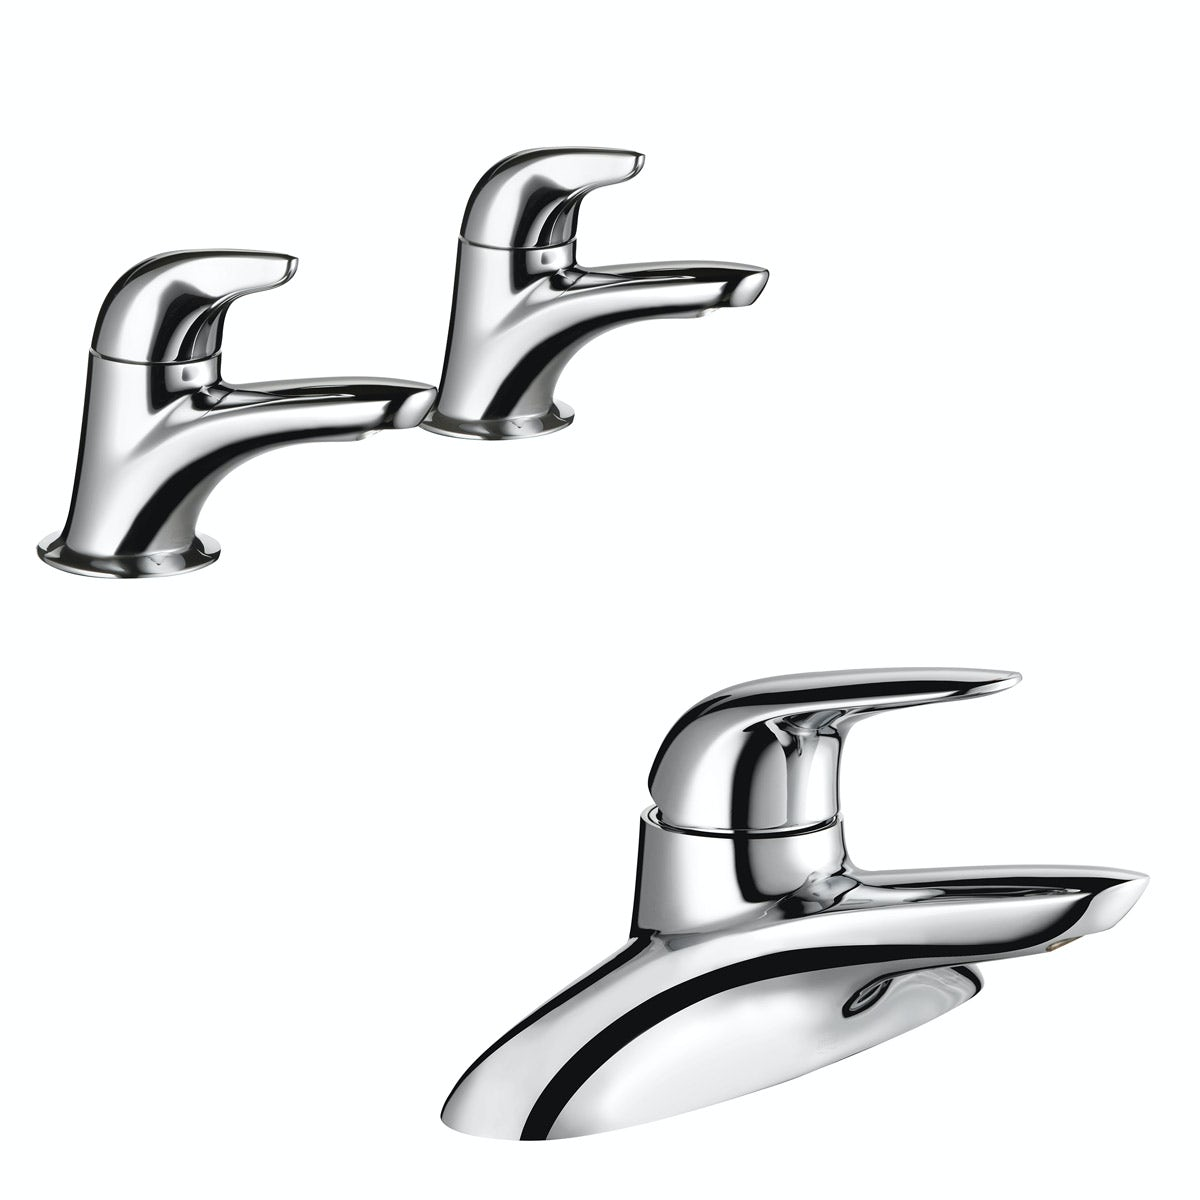 Mira Comfort basin tap and bath mixer tap pack